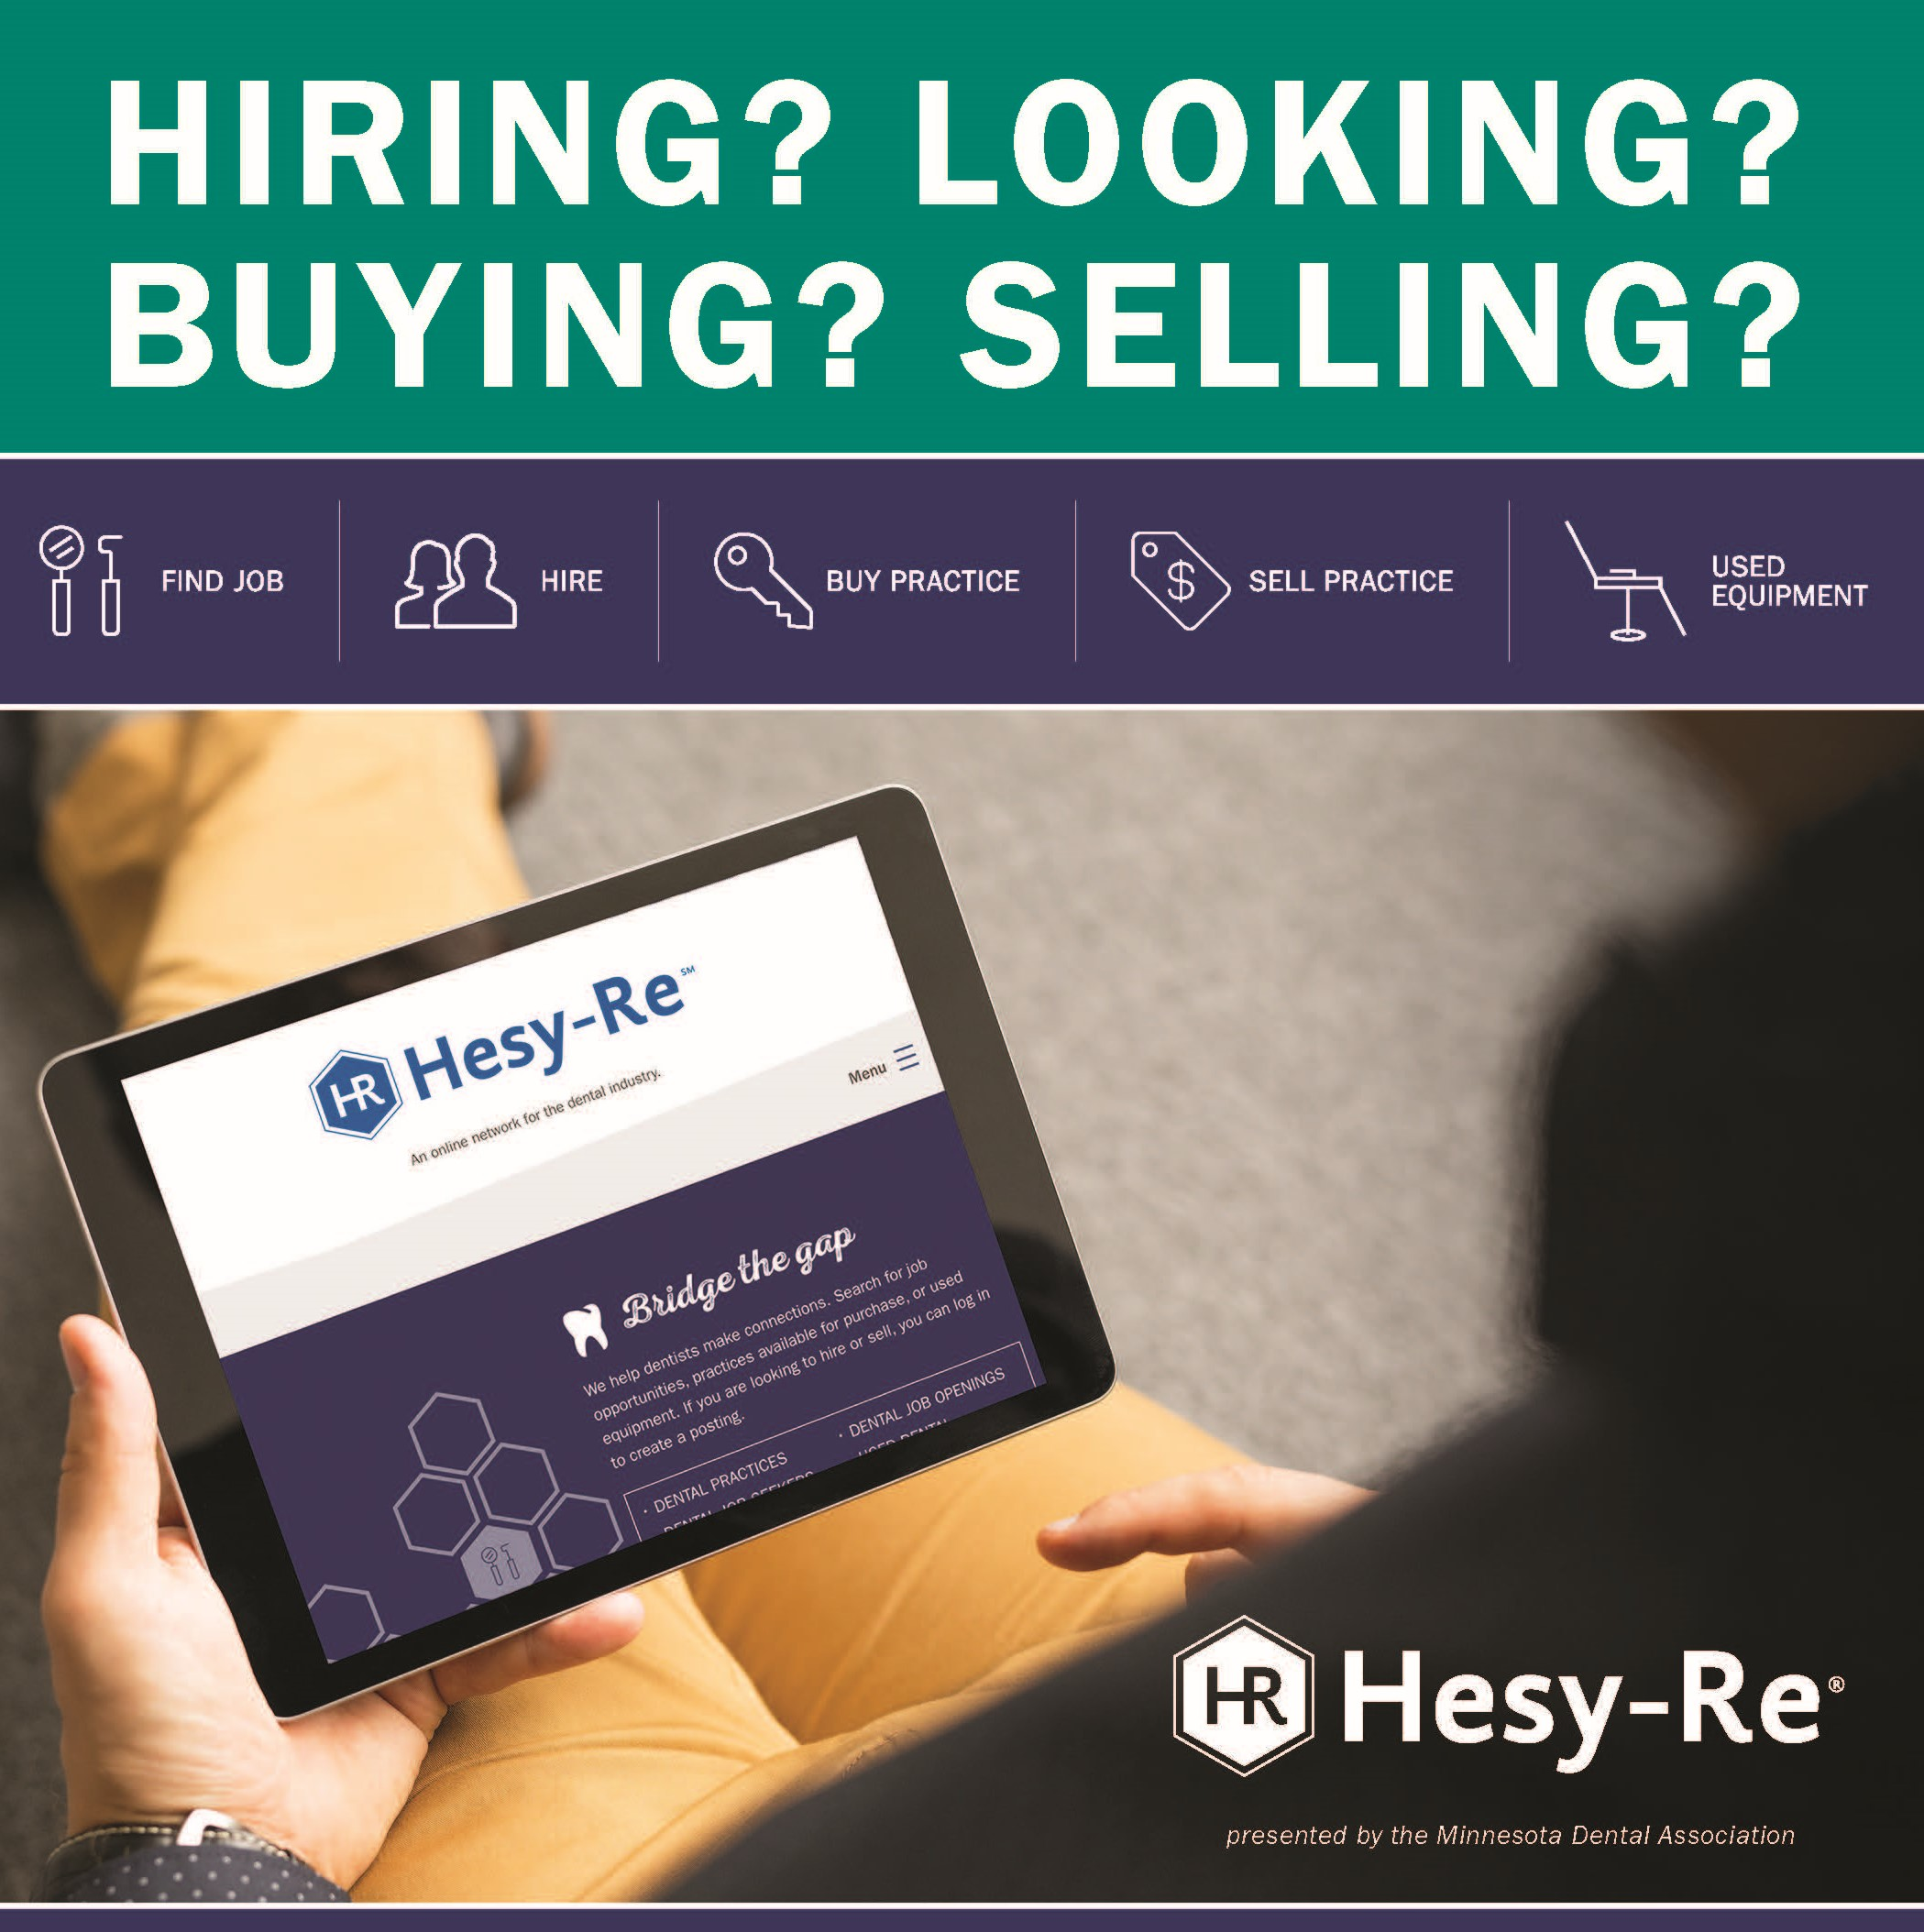 Hiring? Looking? Buying? Selling?